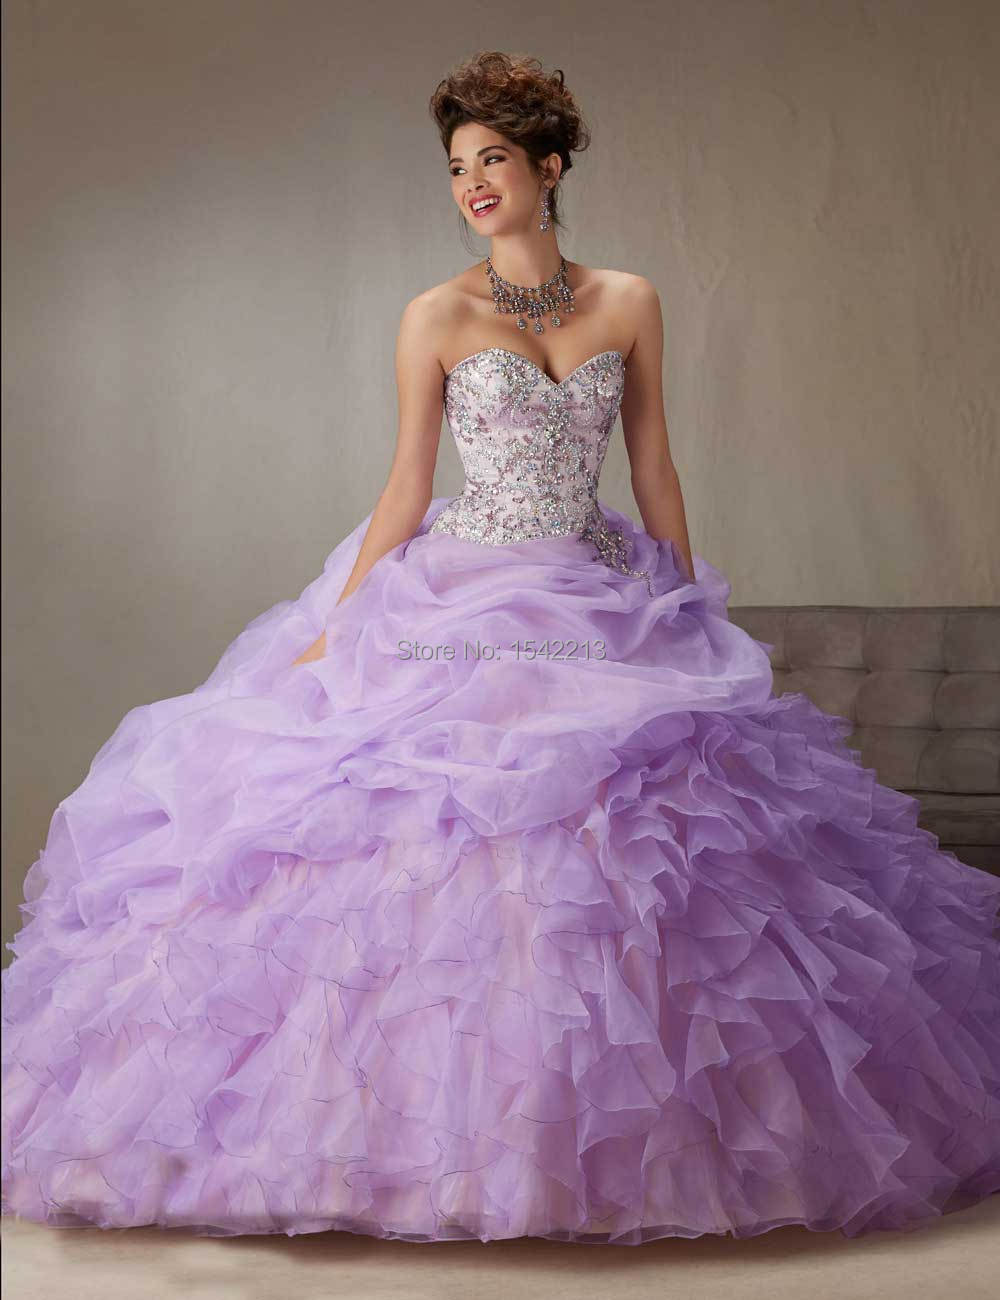 Compare Prices on Purple Ball Gowns- Online Shopping/Buy Low Price ...